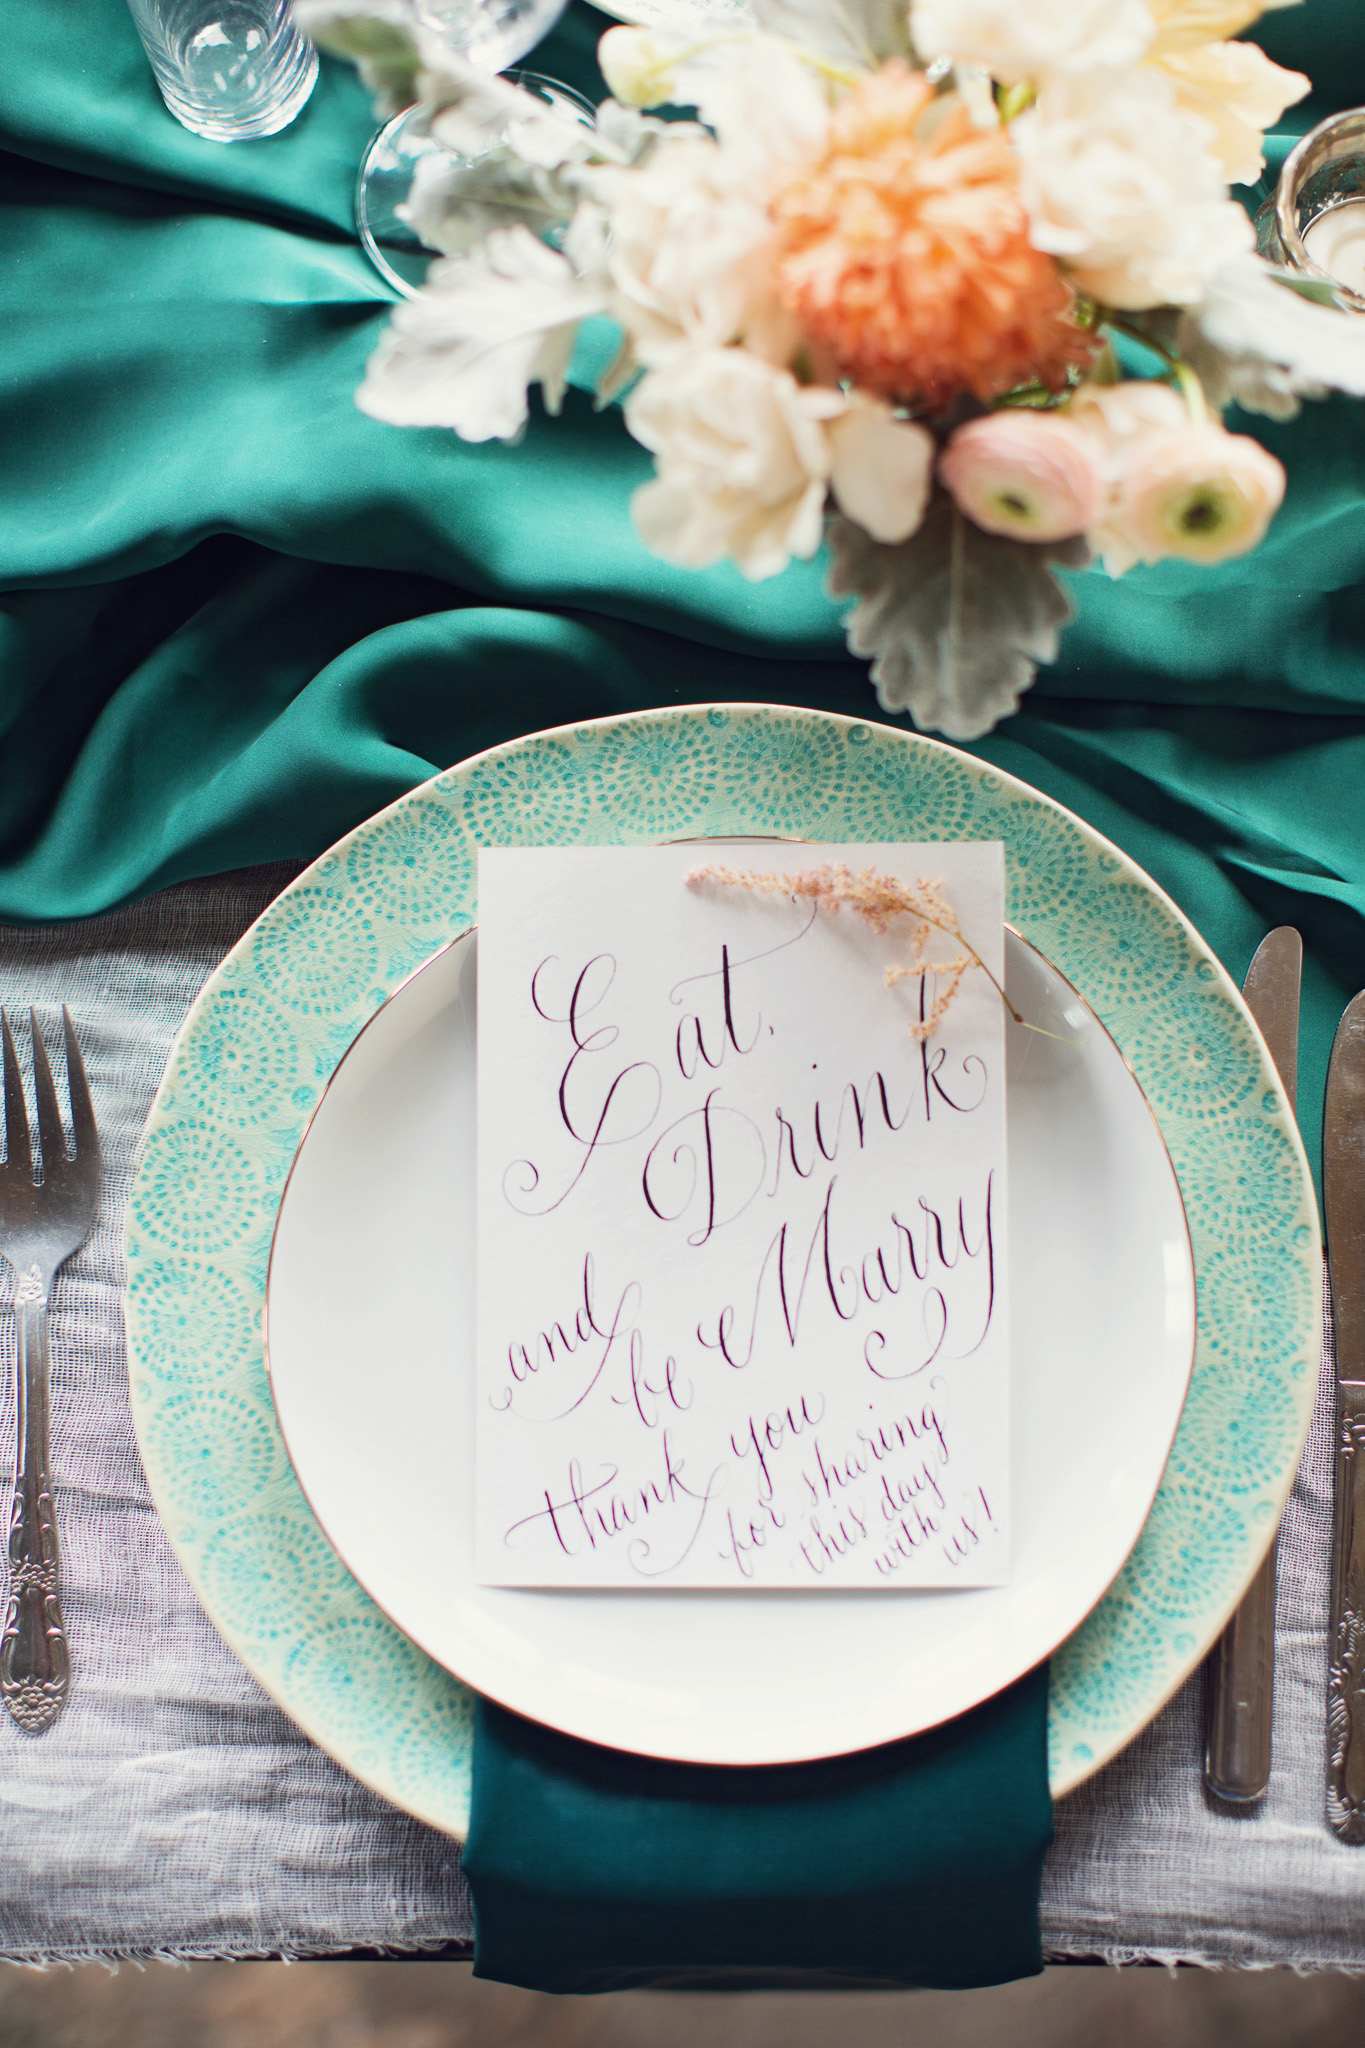 emerald-mint-place-setting-eat-drink-be-happy